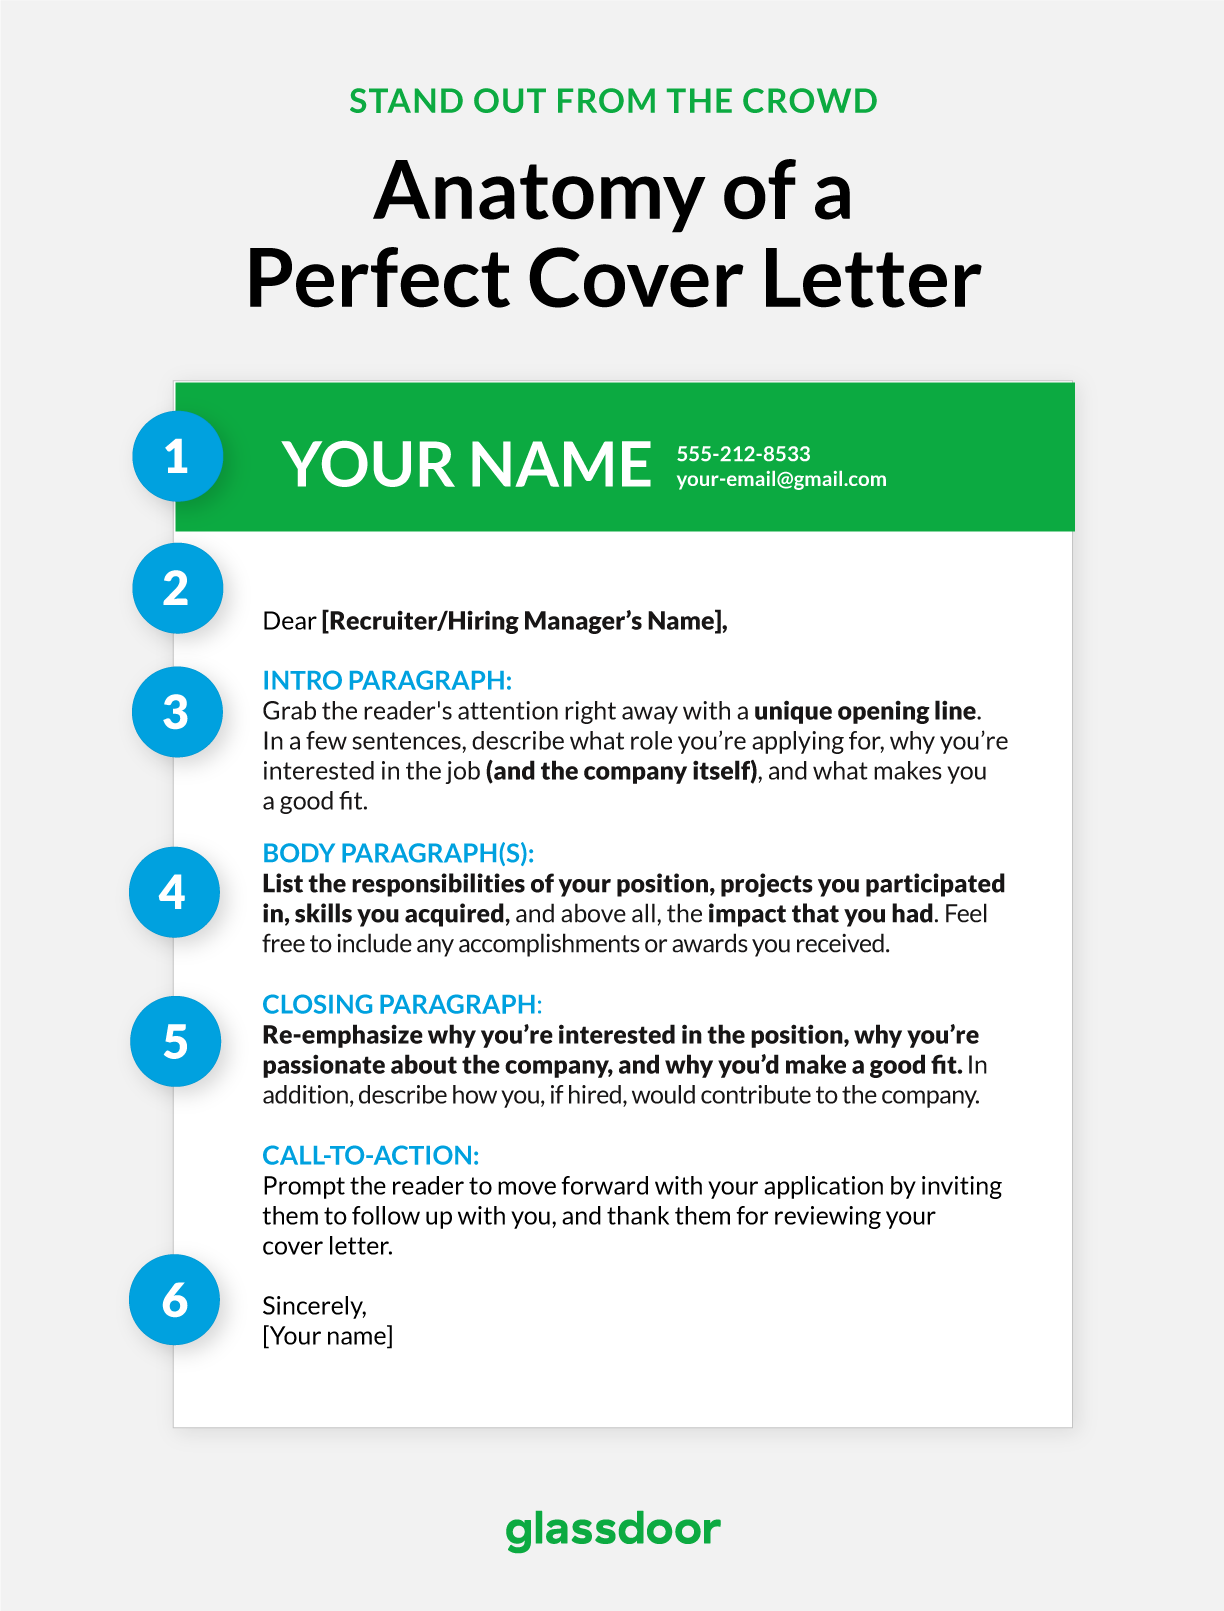 Steps To Make The Perfect Cover Letter  Job Search Tricks